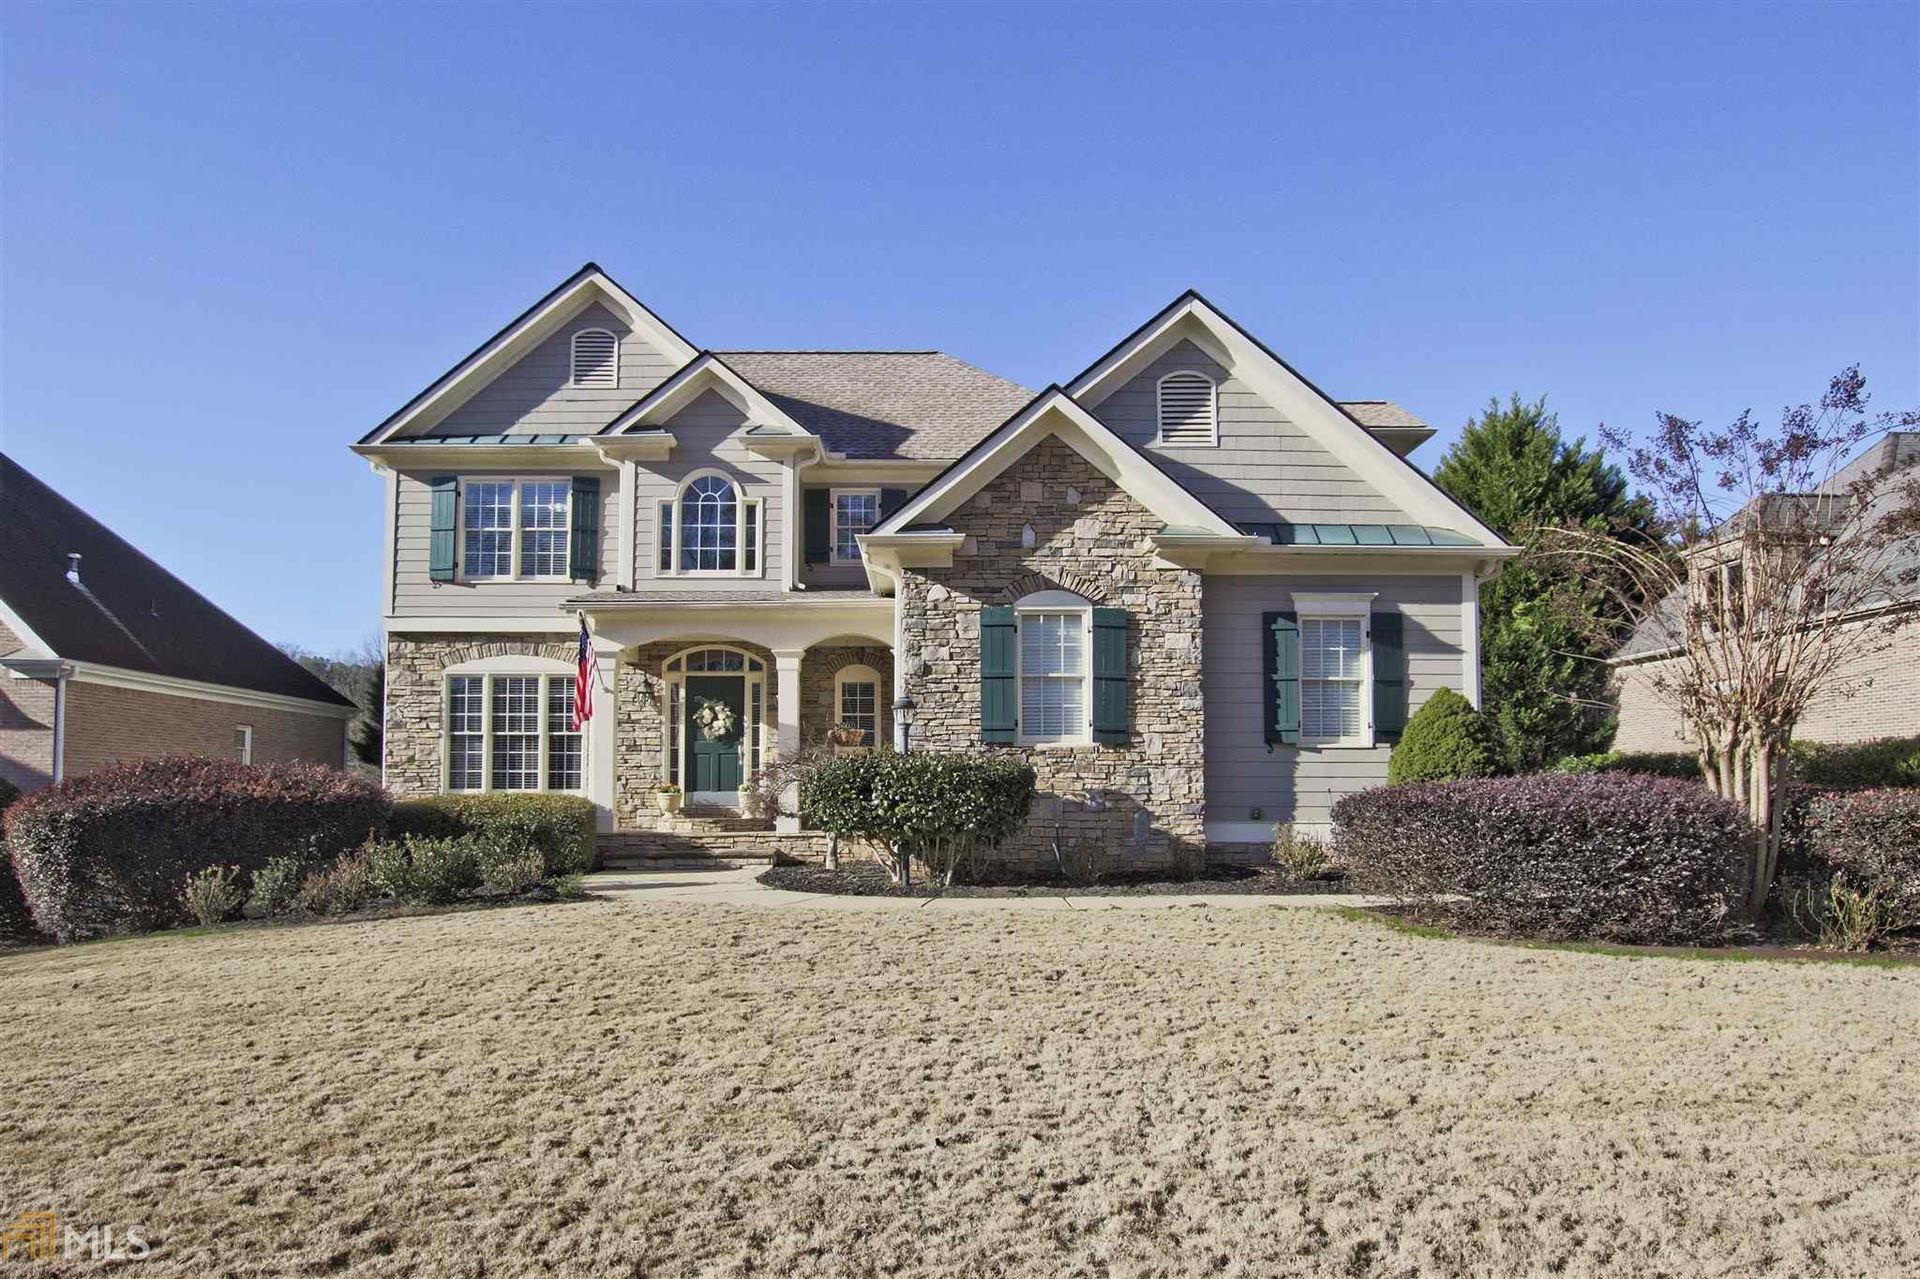 1220 Oakleigh Valley Dr, Powder Springs, GA 30127 - MLS#: 8906784